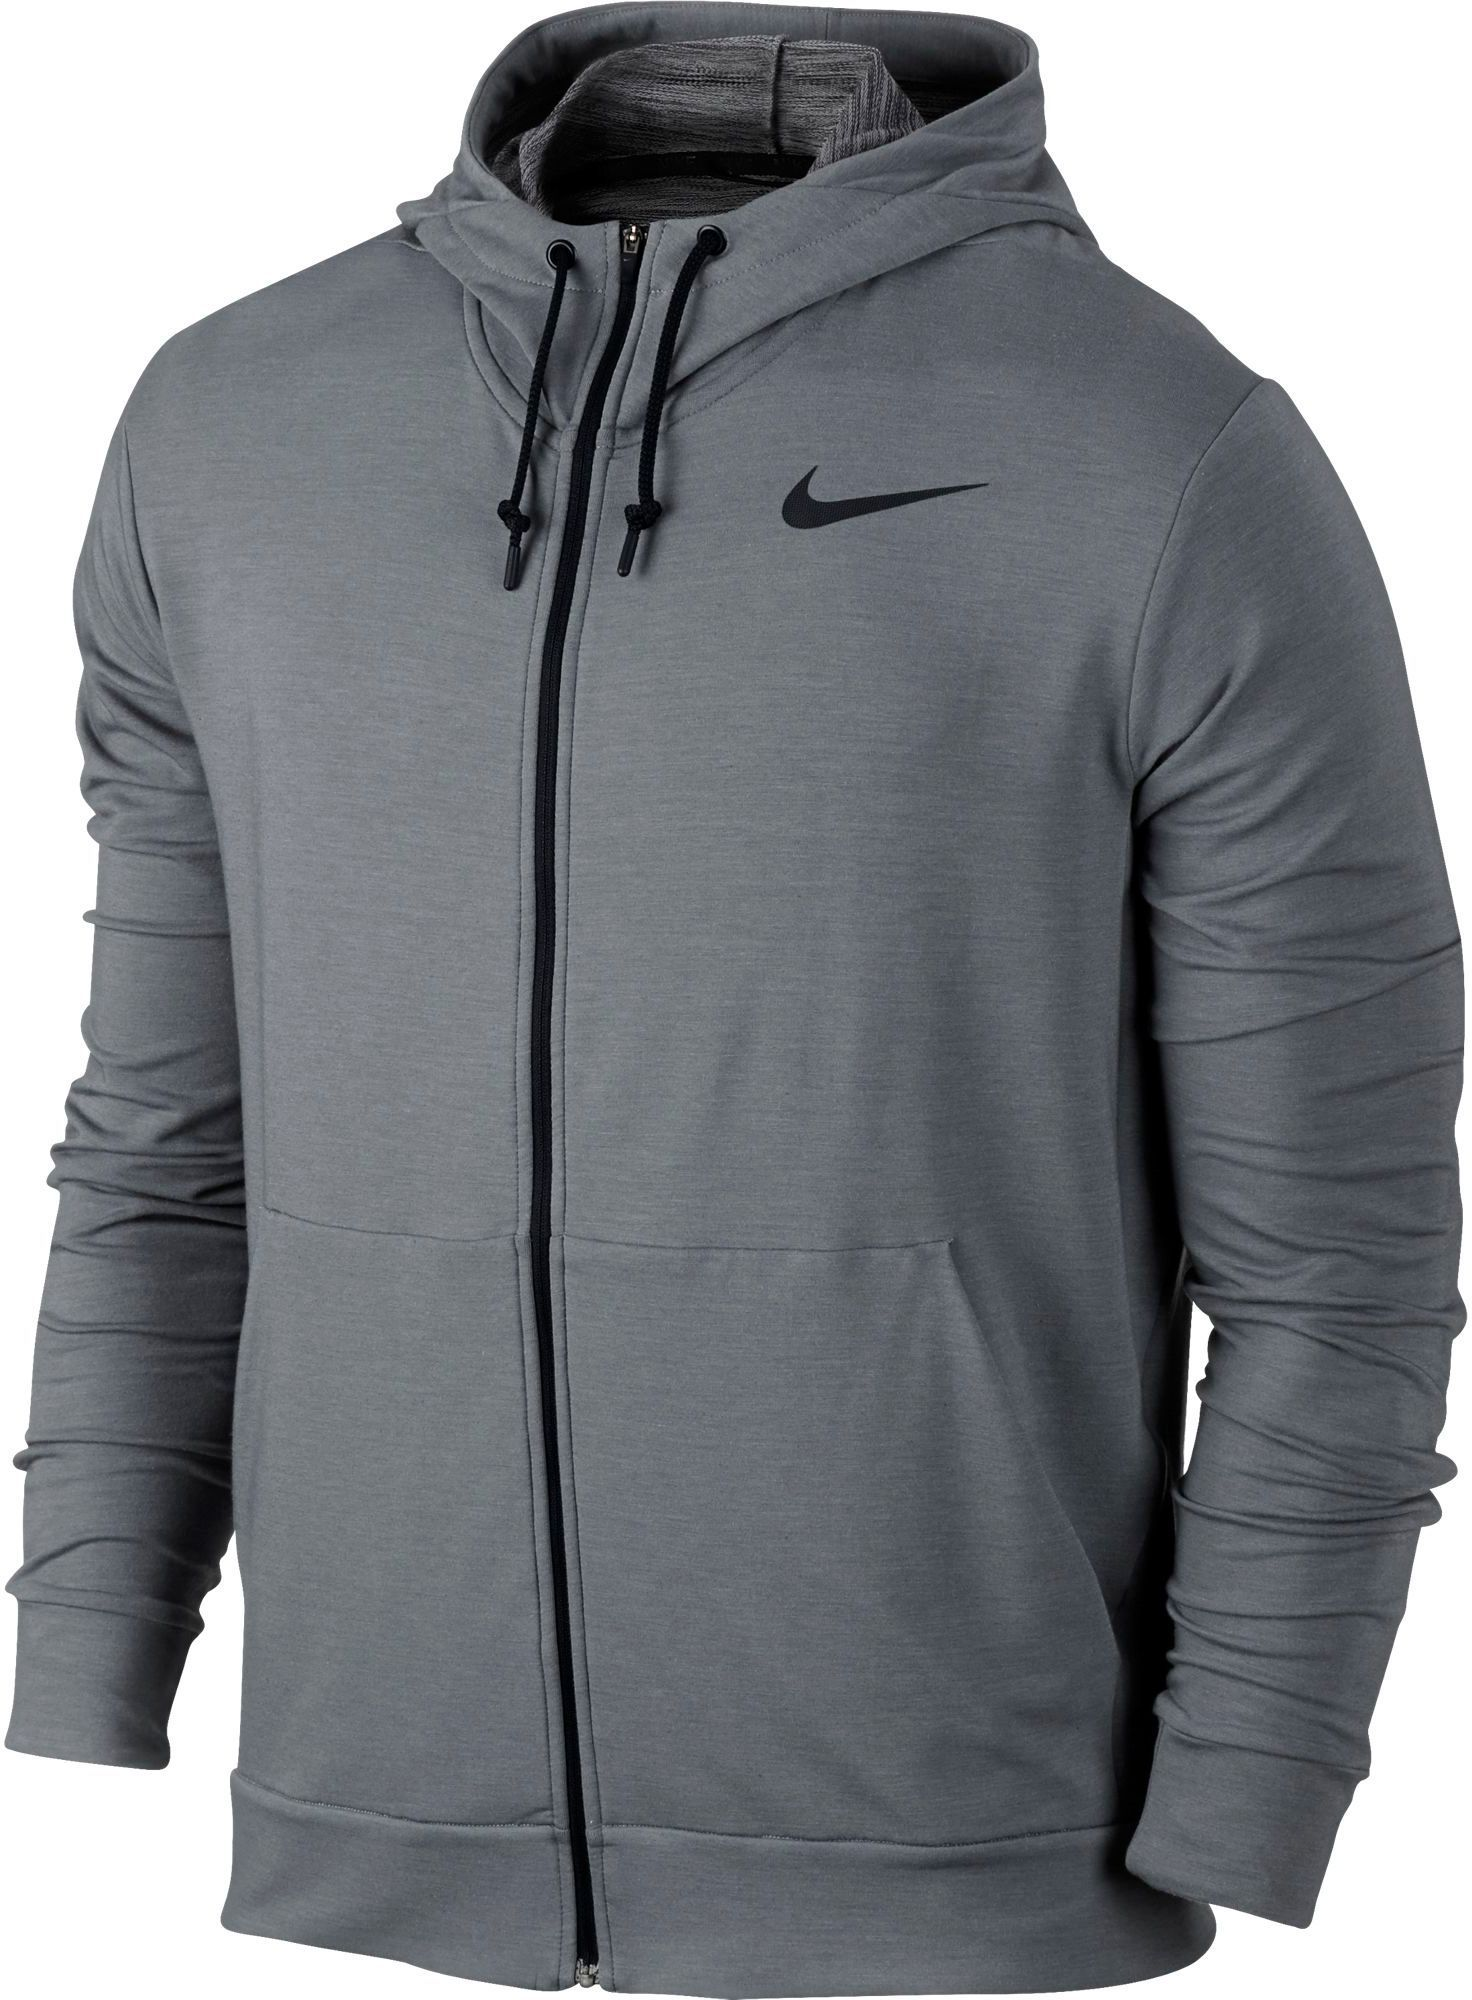 Nike Men s Dri-FIT Fleece Full Zip Hoodie, Size  Medium, Cool Grey ... 915f1f7862